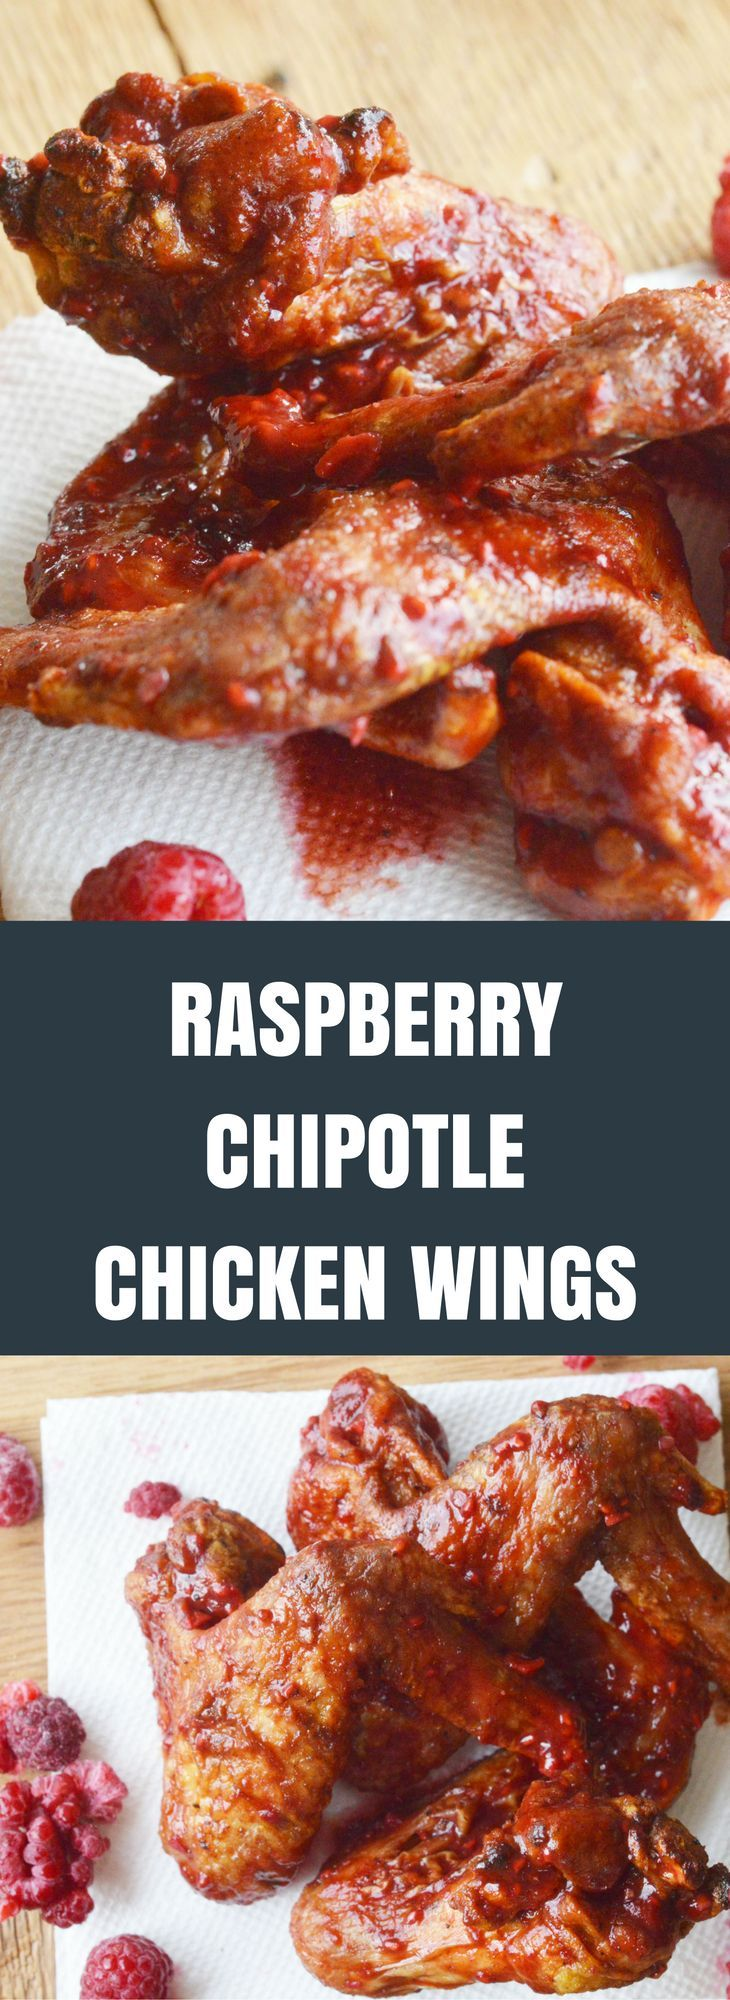 Raspberry Chipotle Chicken Wings Recipe   Sticky Sweet Goodness